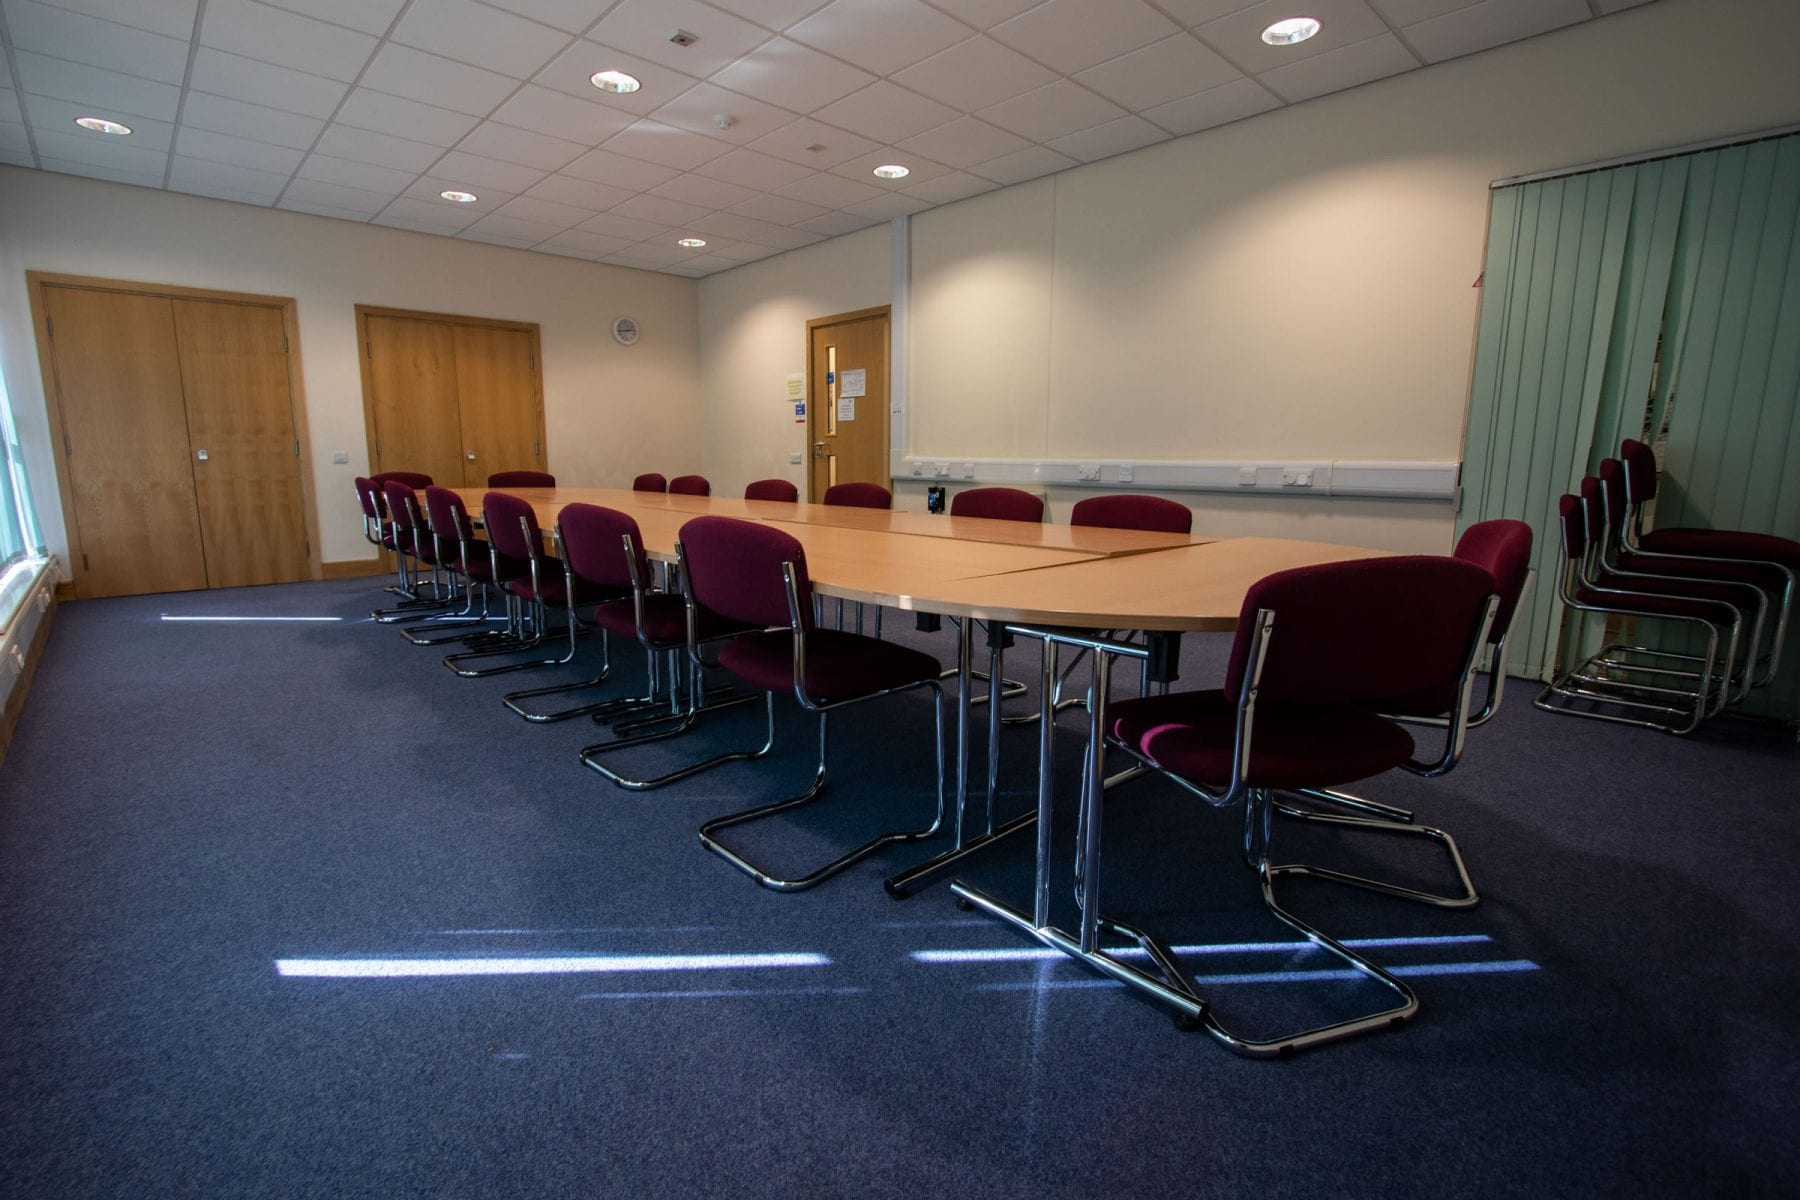 Meeting room for hire in Elloughton-cum-Brough